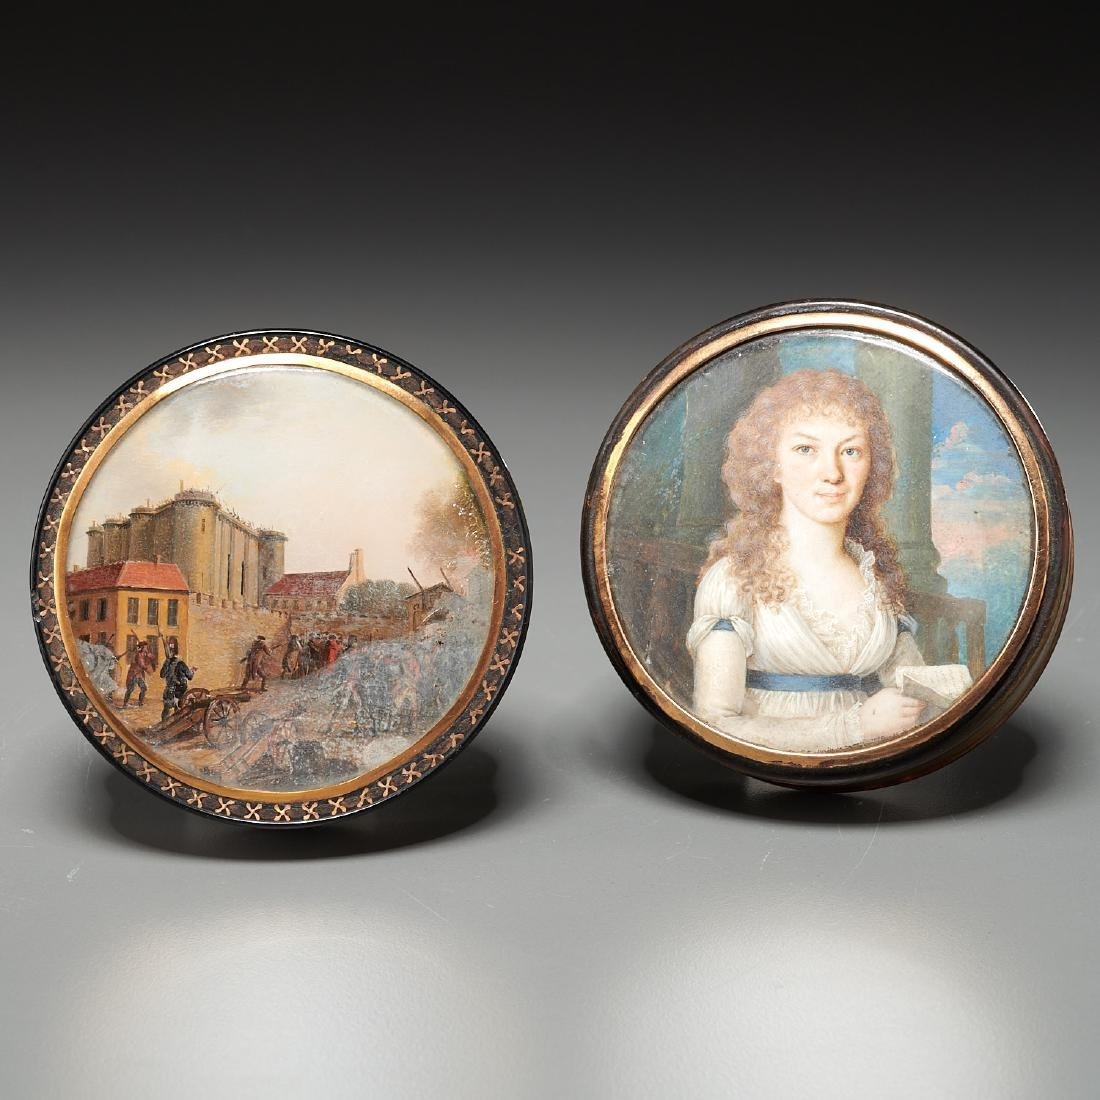 (2) French gold-mounted portrait miniature boxes